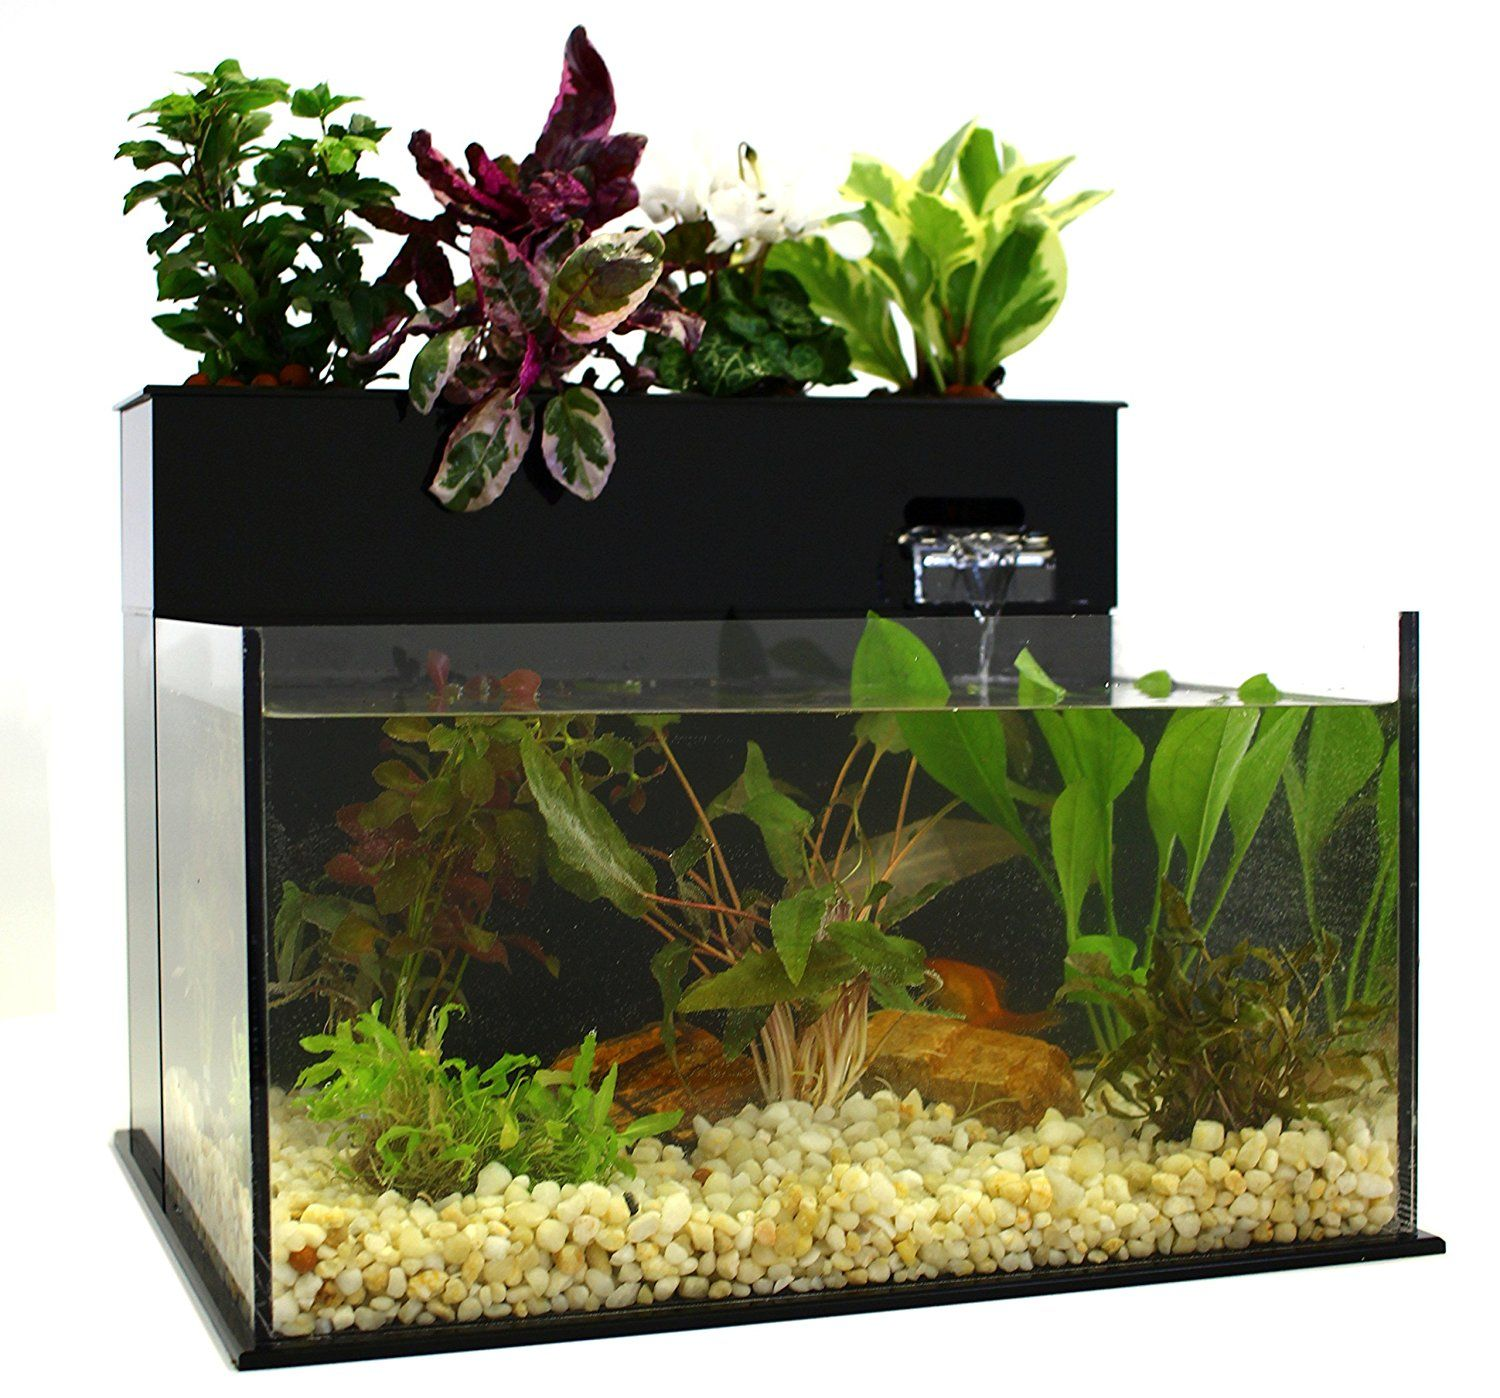 Fin to flower aquaponic aquarium midsize for Fish tank herb garden